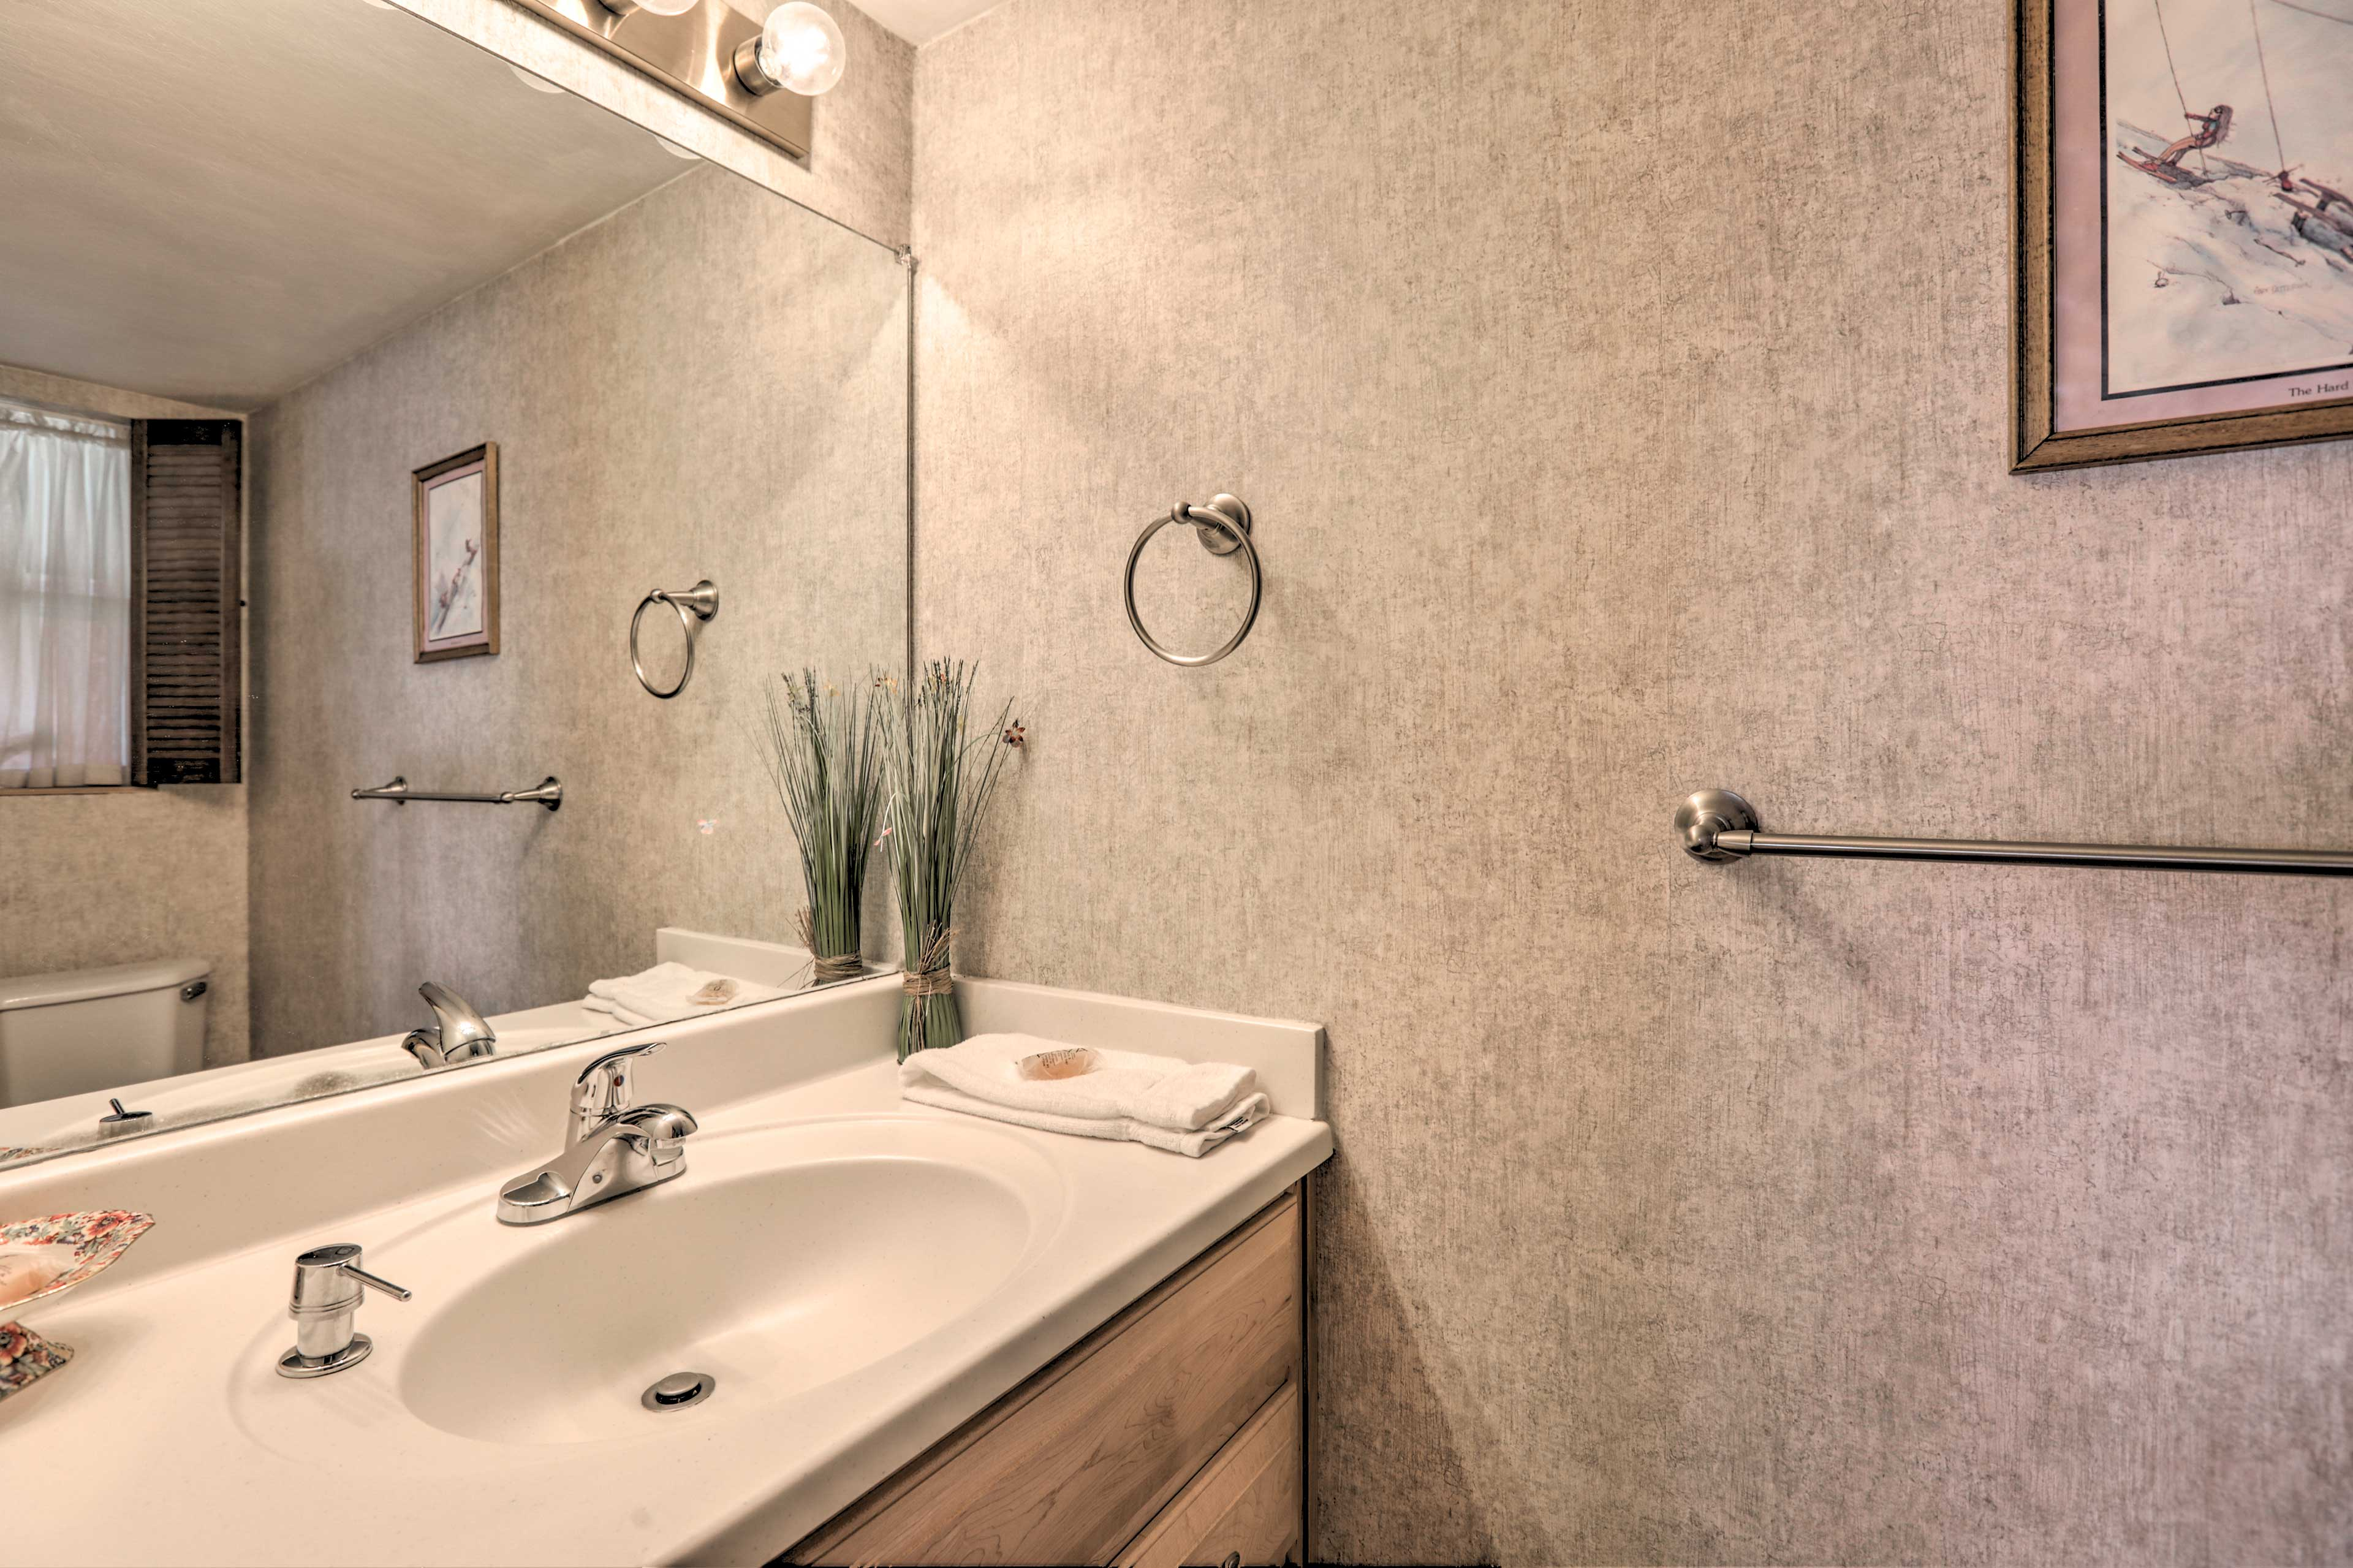 Freshen up in this bathroom before heading out to explore.